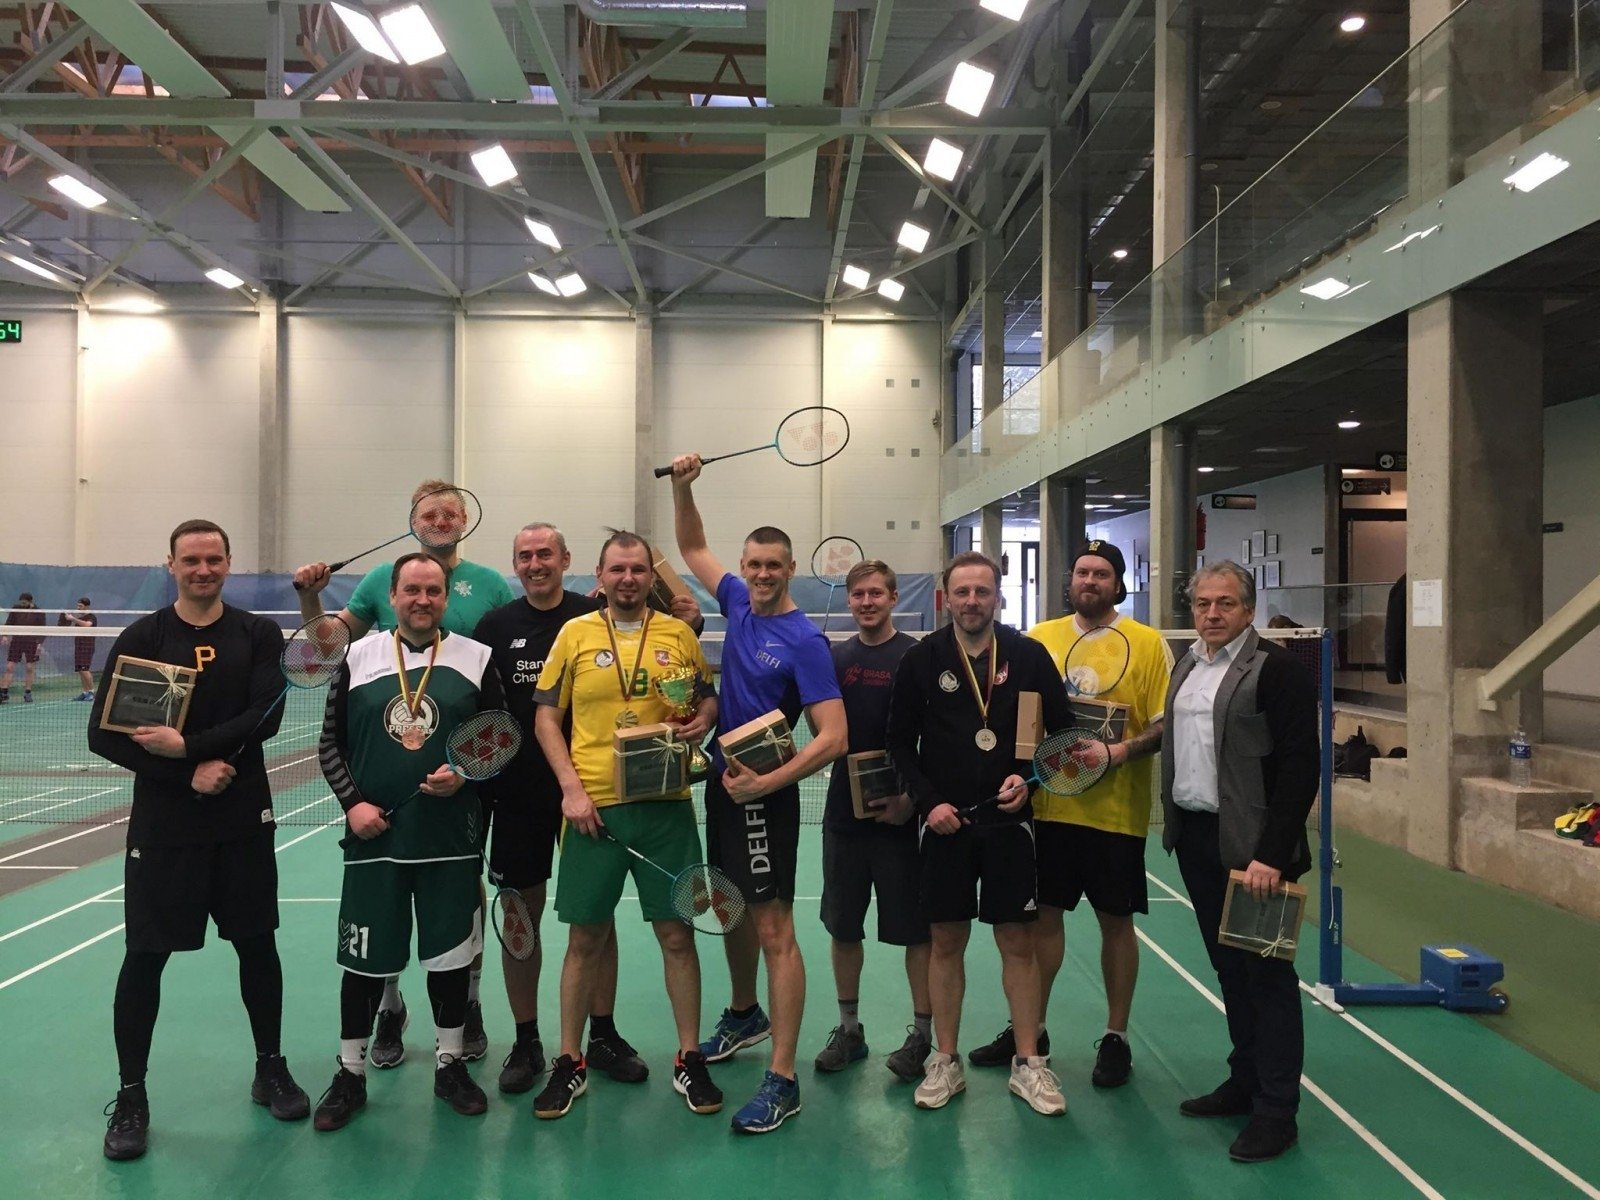 The sports journalist badminton tournament is the same winner for